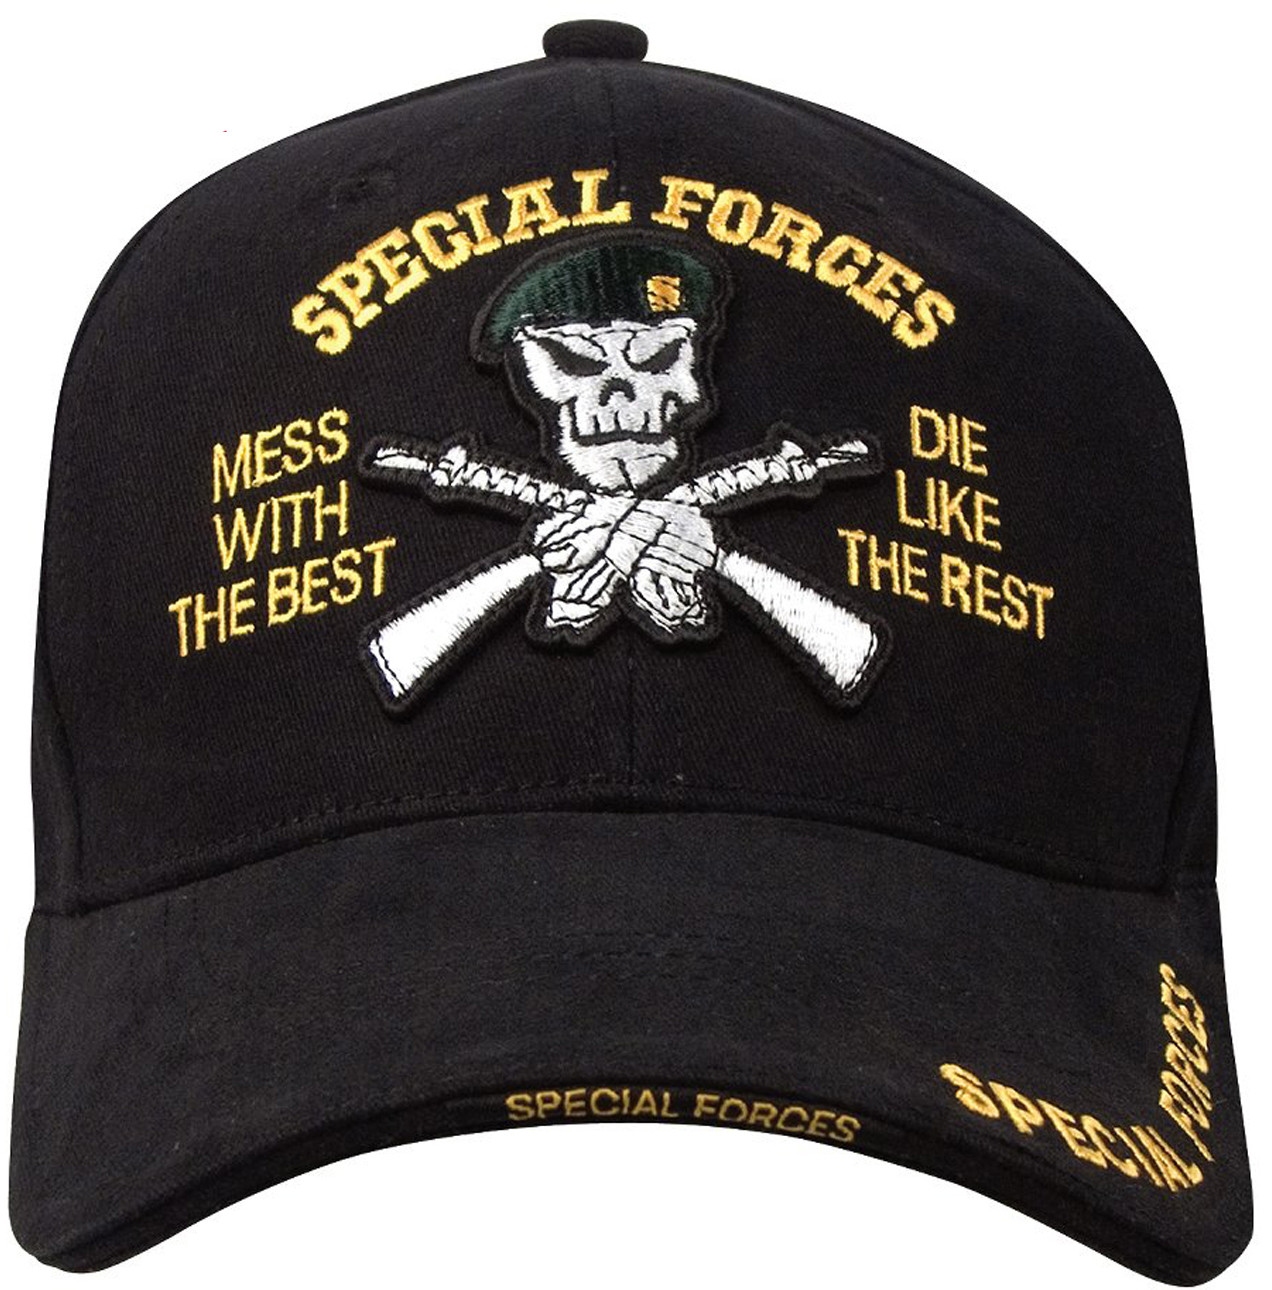 07e769048b9 More Views. Black Deluxe Special Forces Green Beret Low Profile Adjustable  Cap